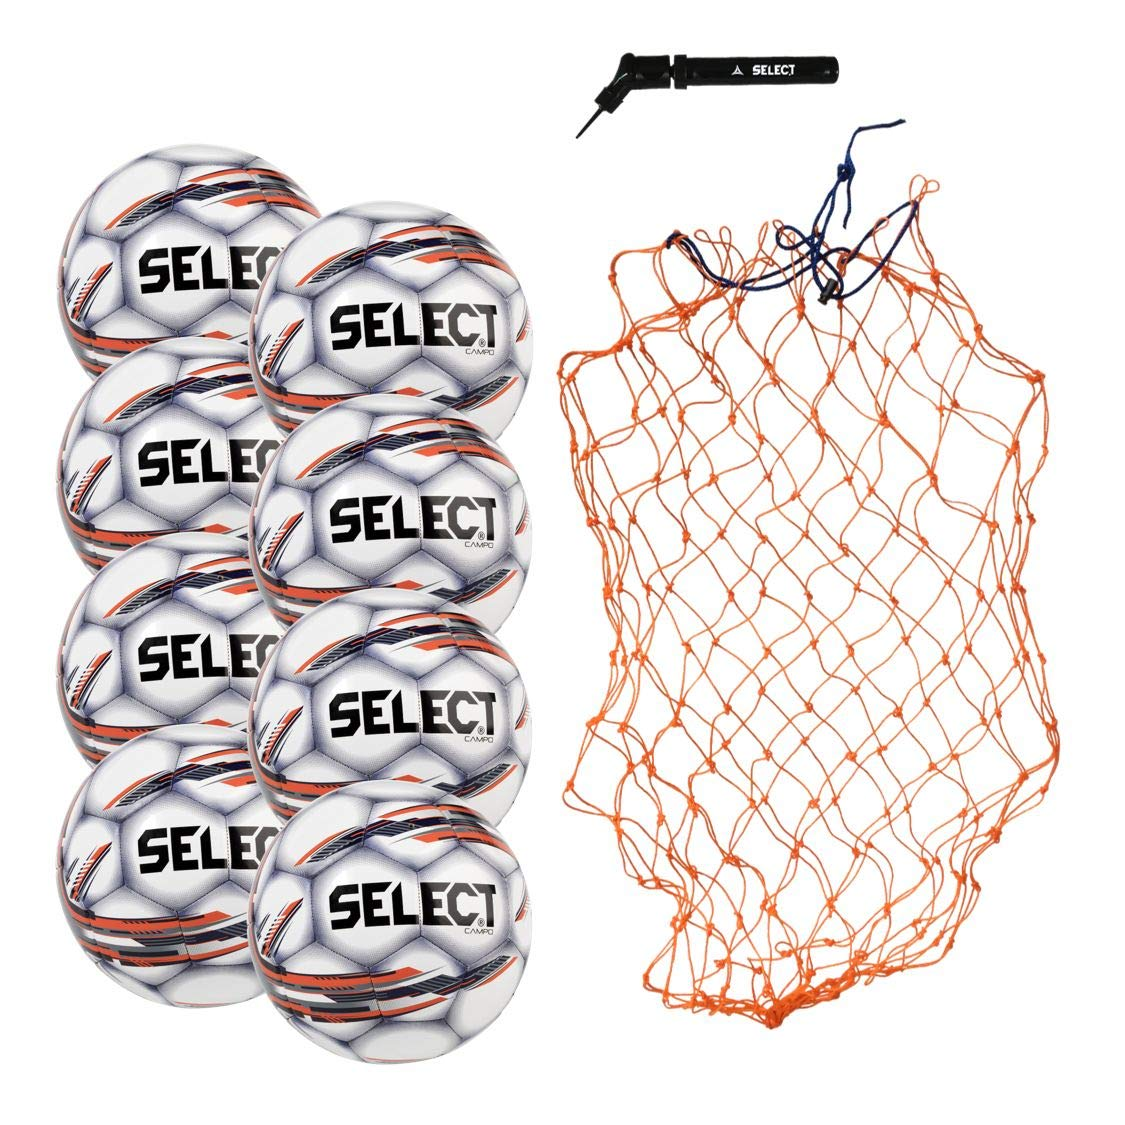 Select Campo Soccer Ball Package - Pack of 8 Soccer Balls with Ball Net and Hand Pump, White, 3